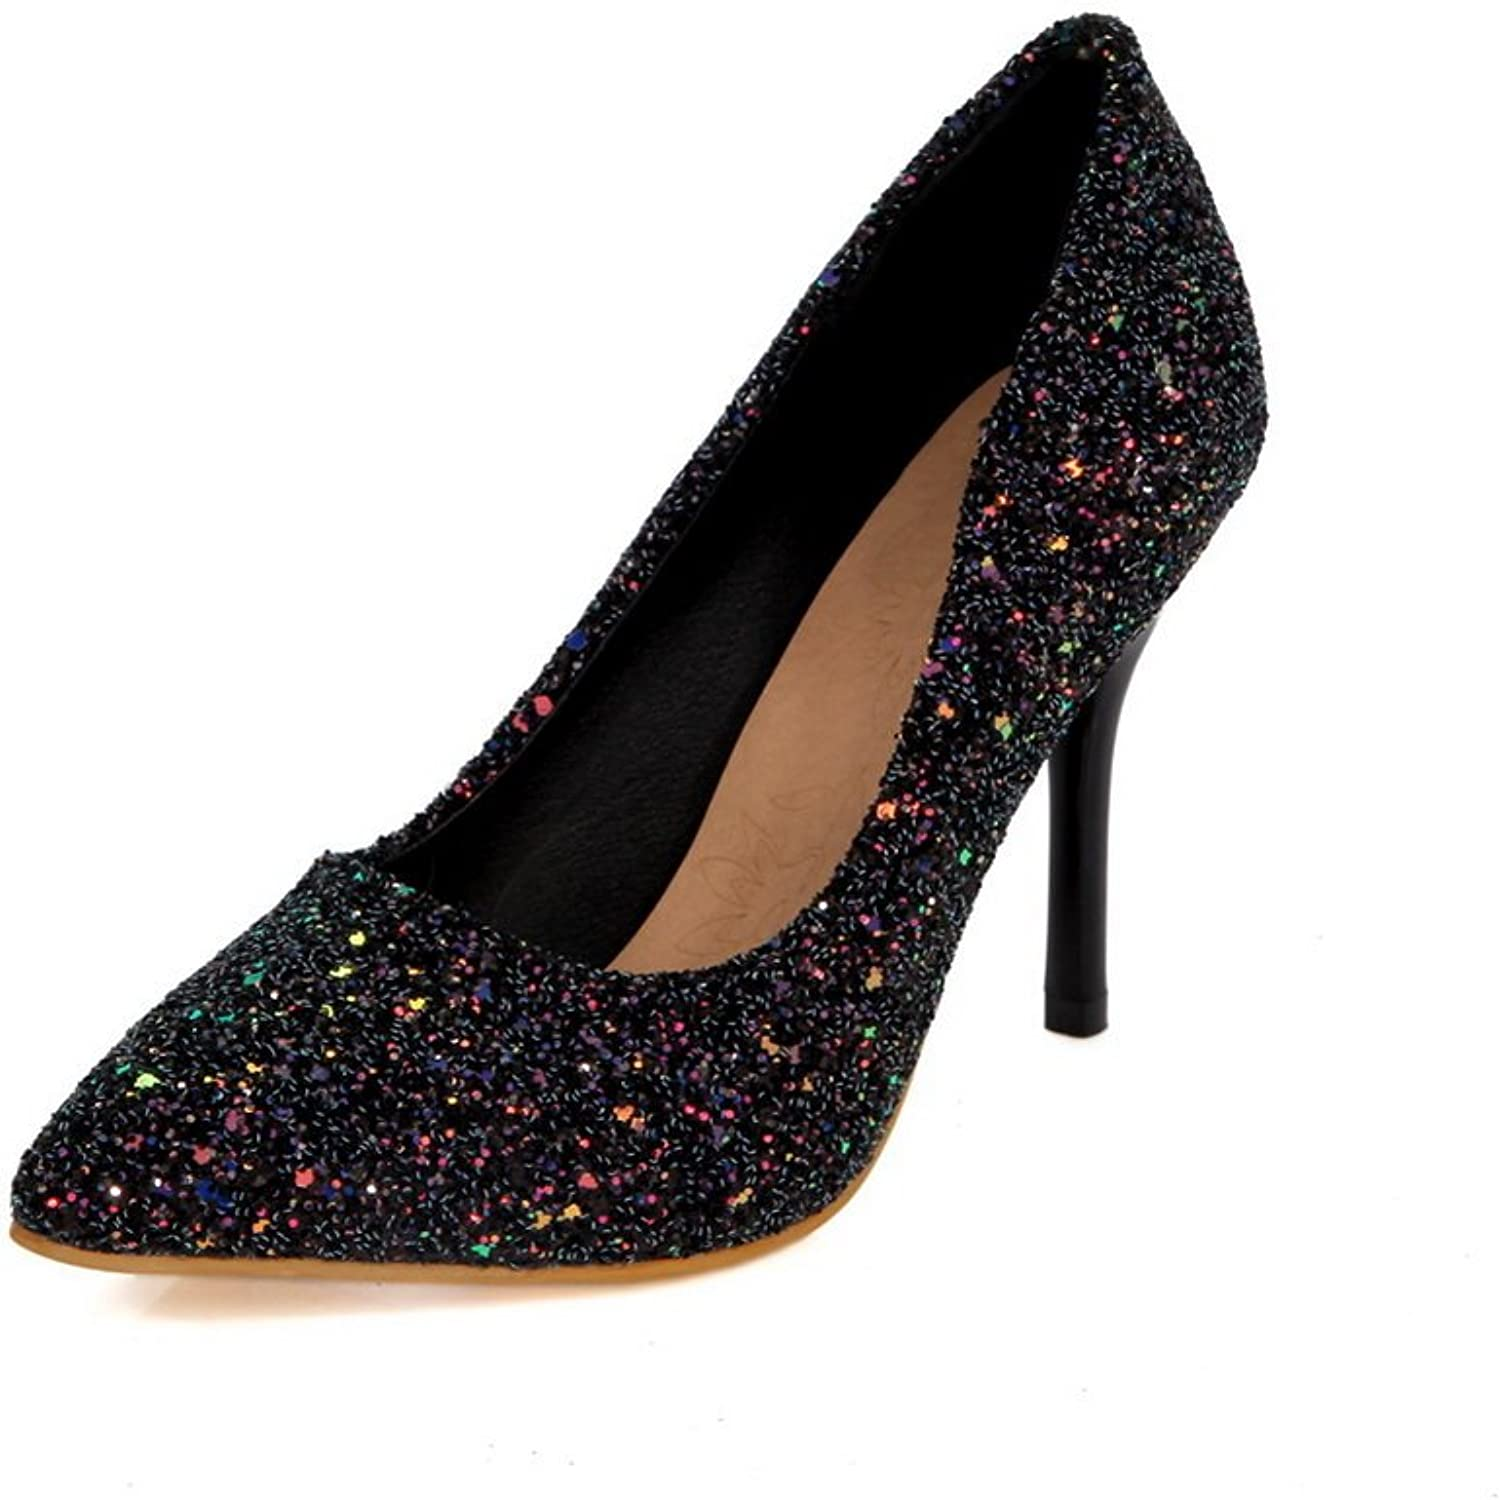 1TO9 Womens Spikes Stilettos Pointed-Toe Low-Cut Uppers Sequin Pumps shoes MMS04178